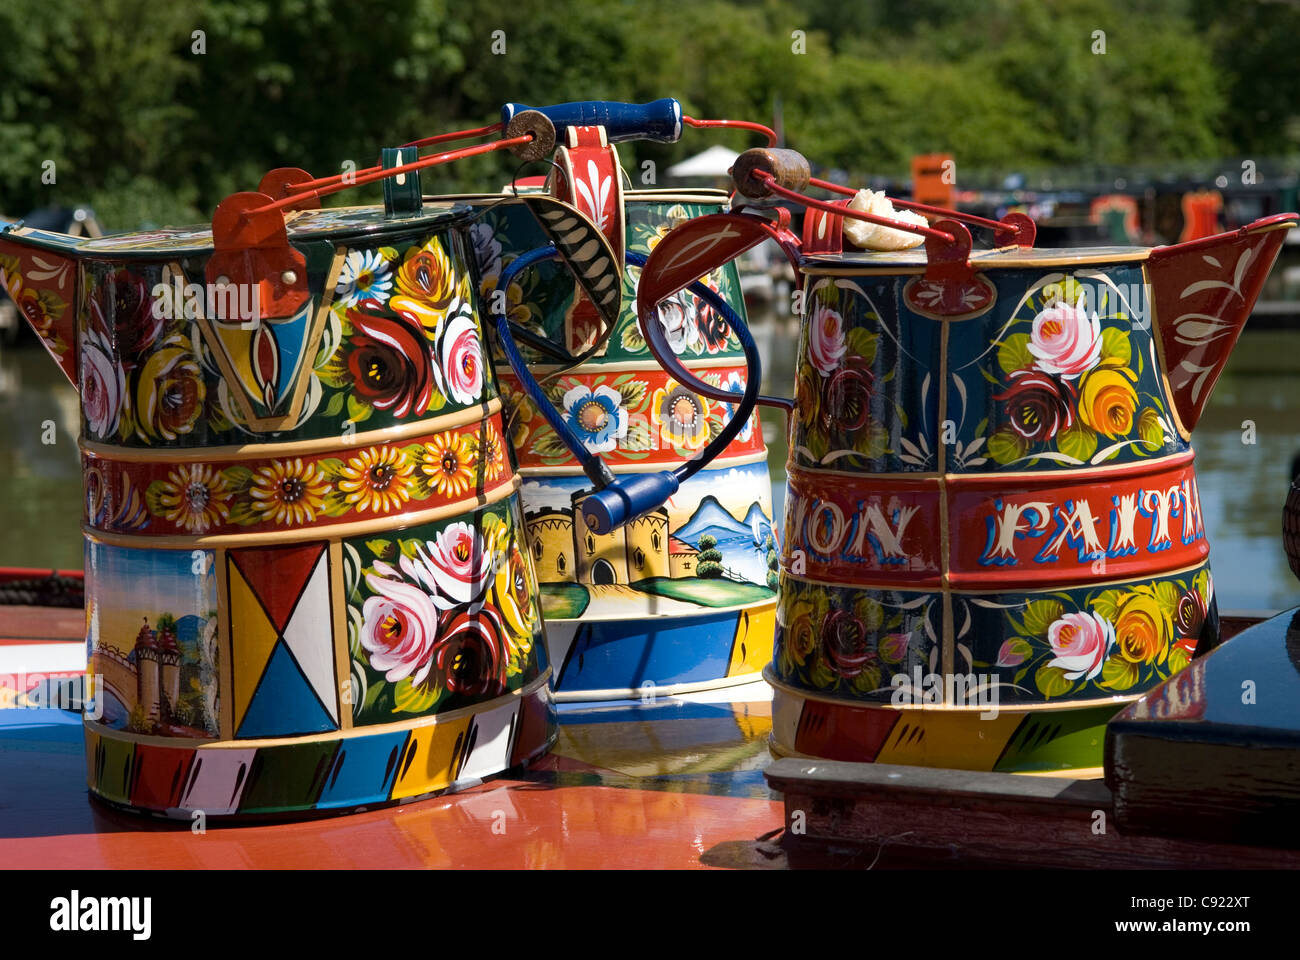 Grand Union Canal. Colourful painted pots on a narrowboat at the Braunston Historic Narrowboat rally 2011. - Stock Image